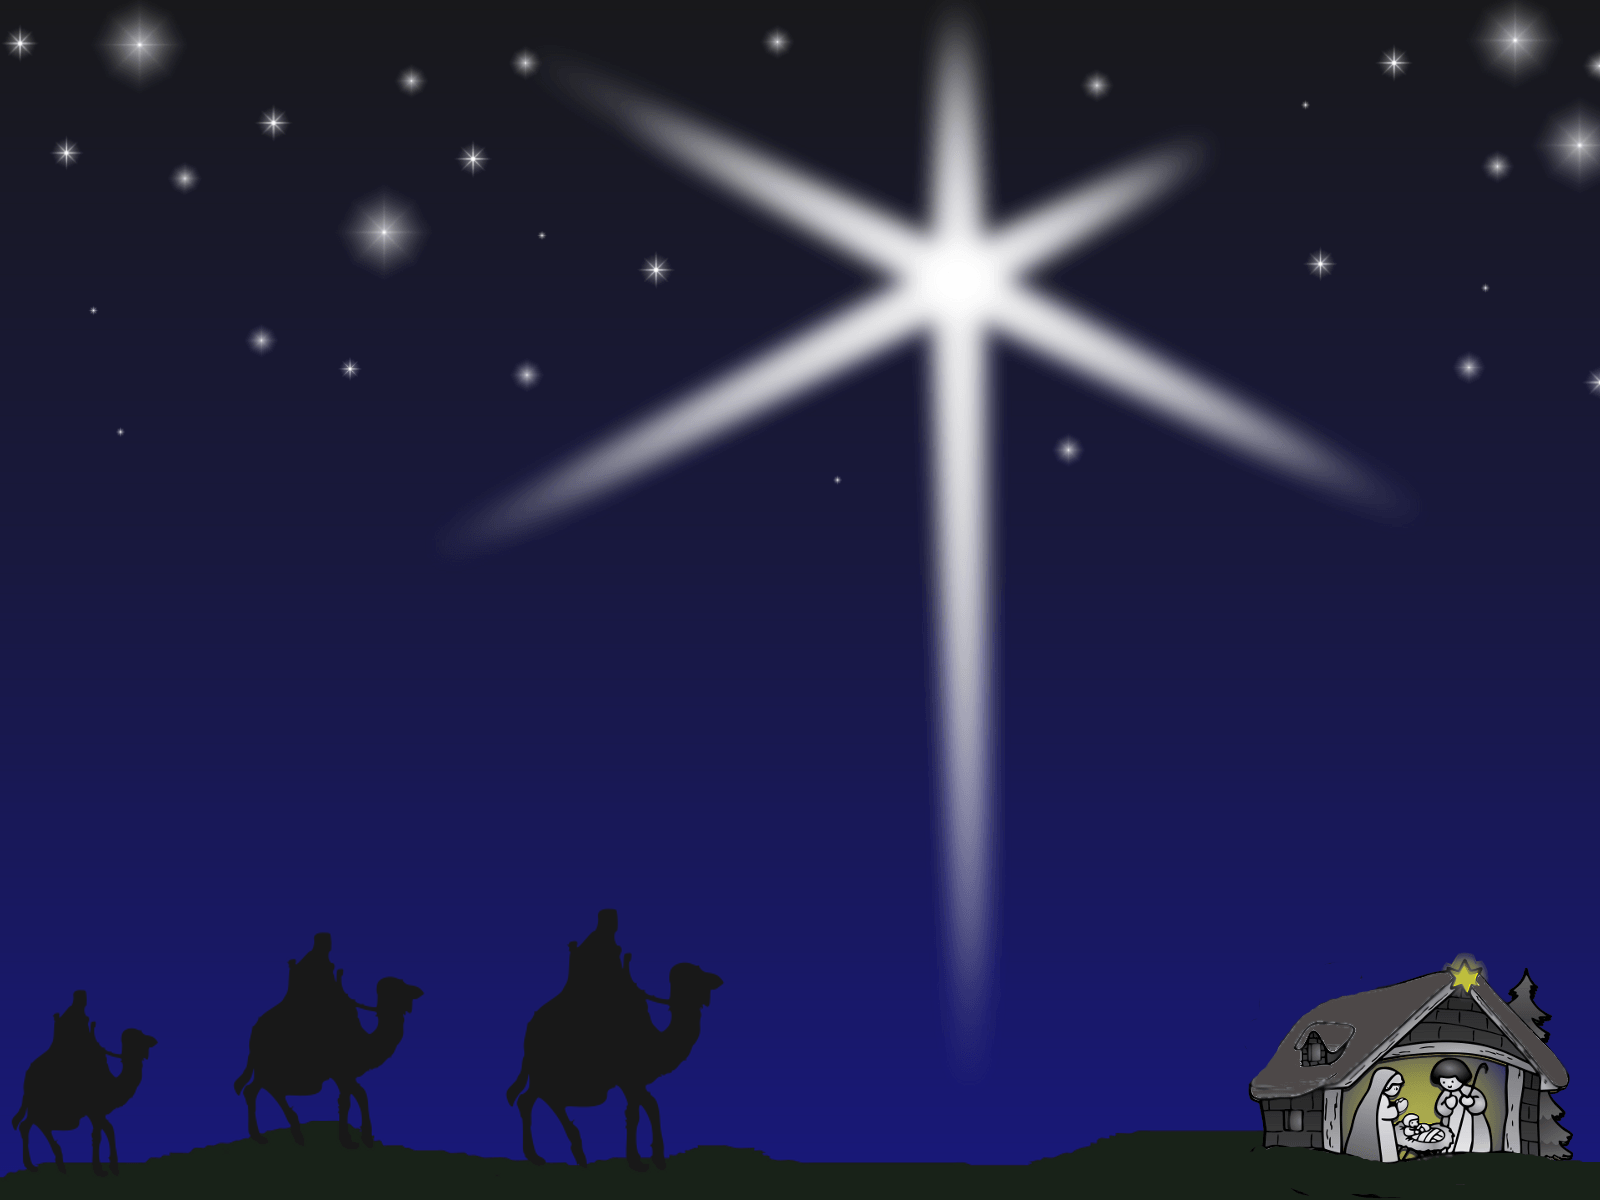 1600x1200 Christmas Nativity Wallpaper - Wallpapers Browse